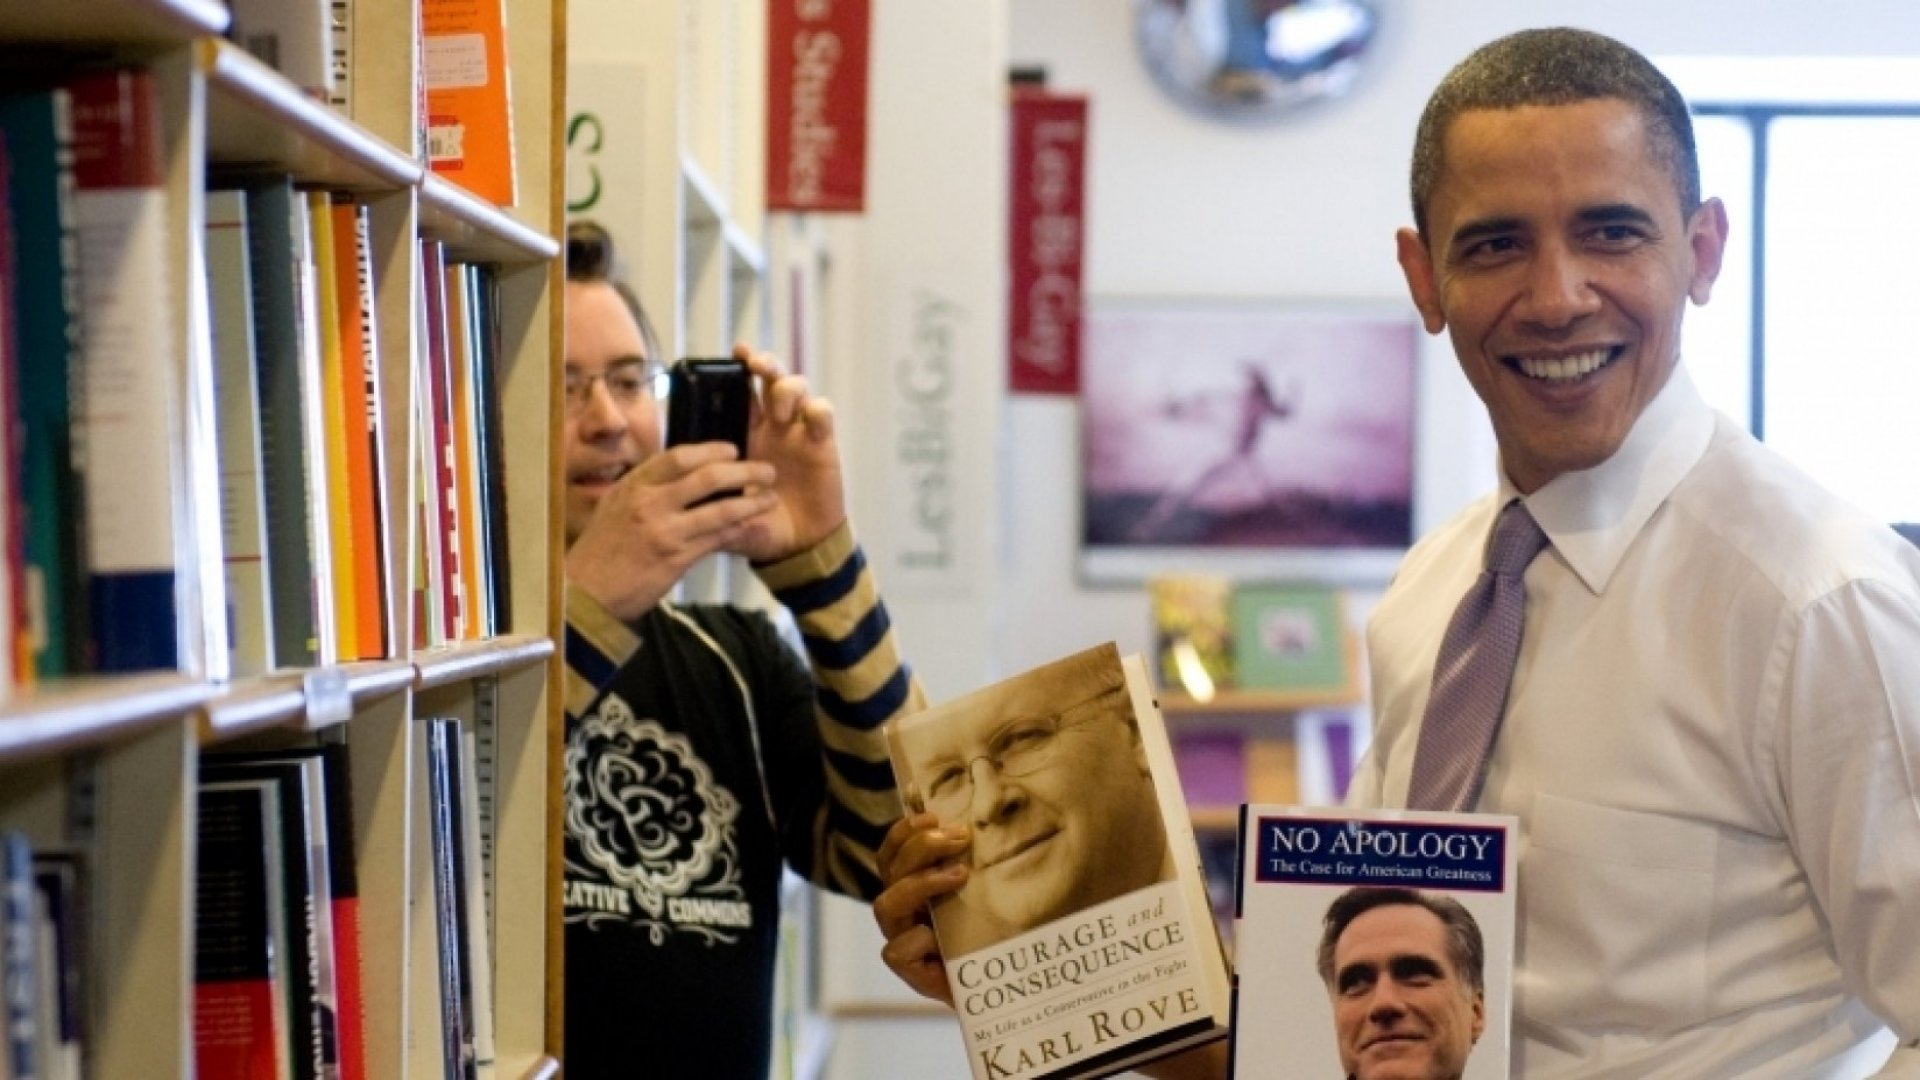 Obama's Picks For Best Novels of All Time